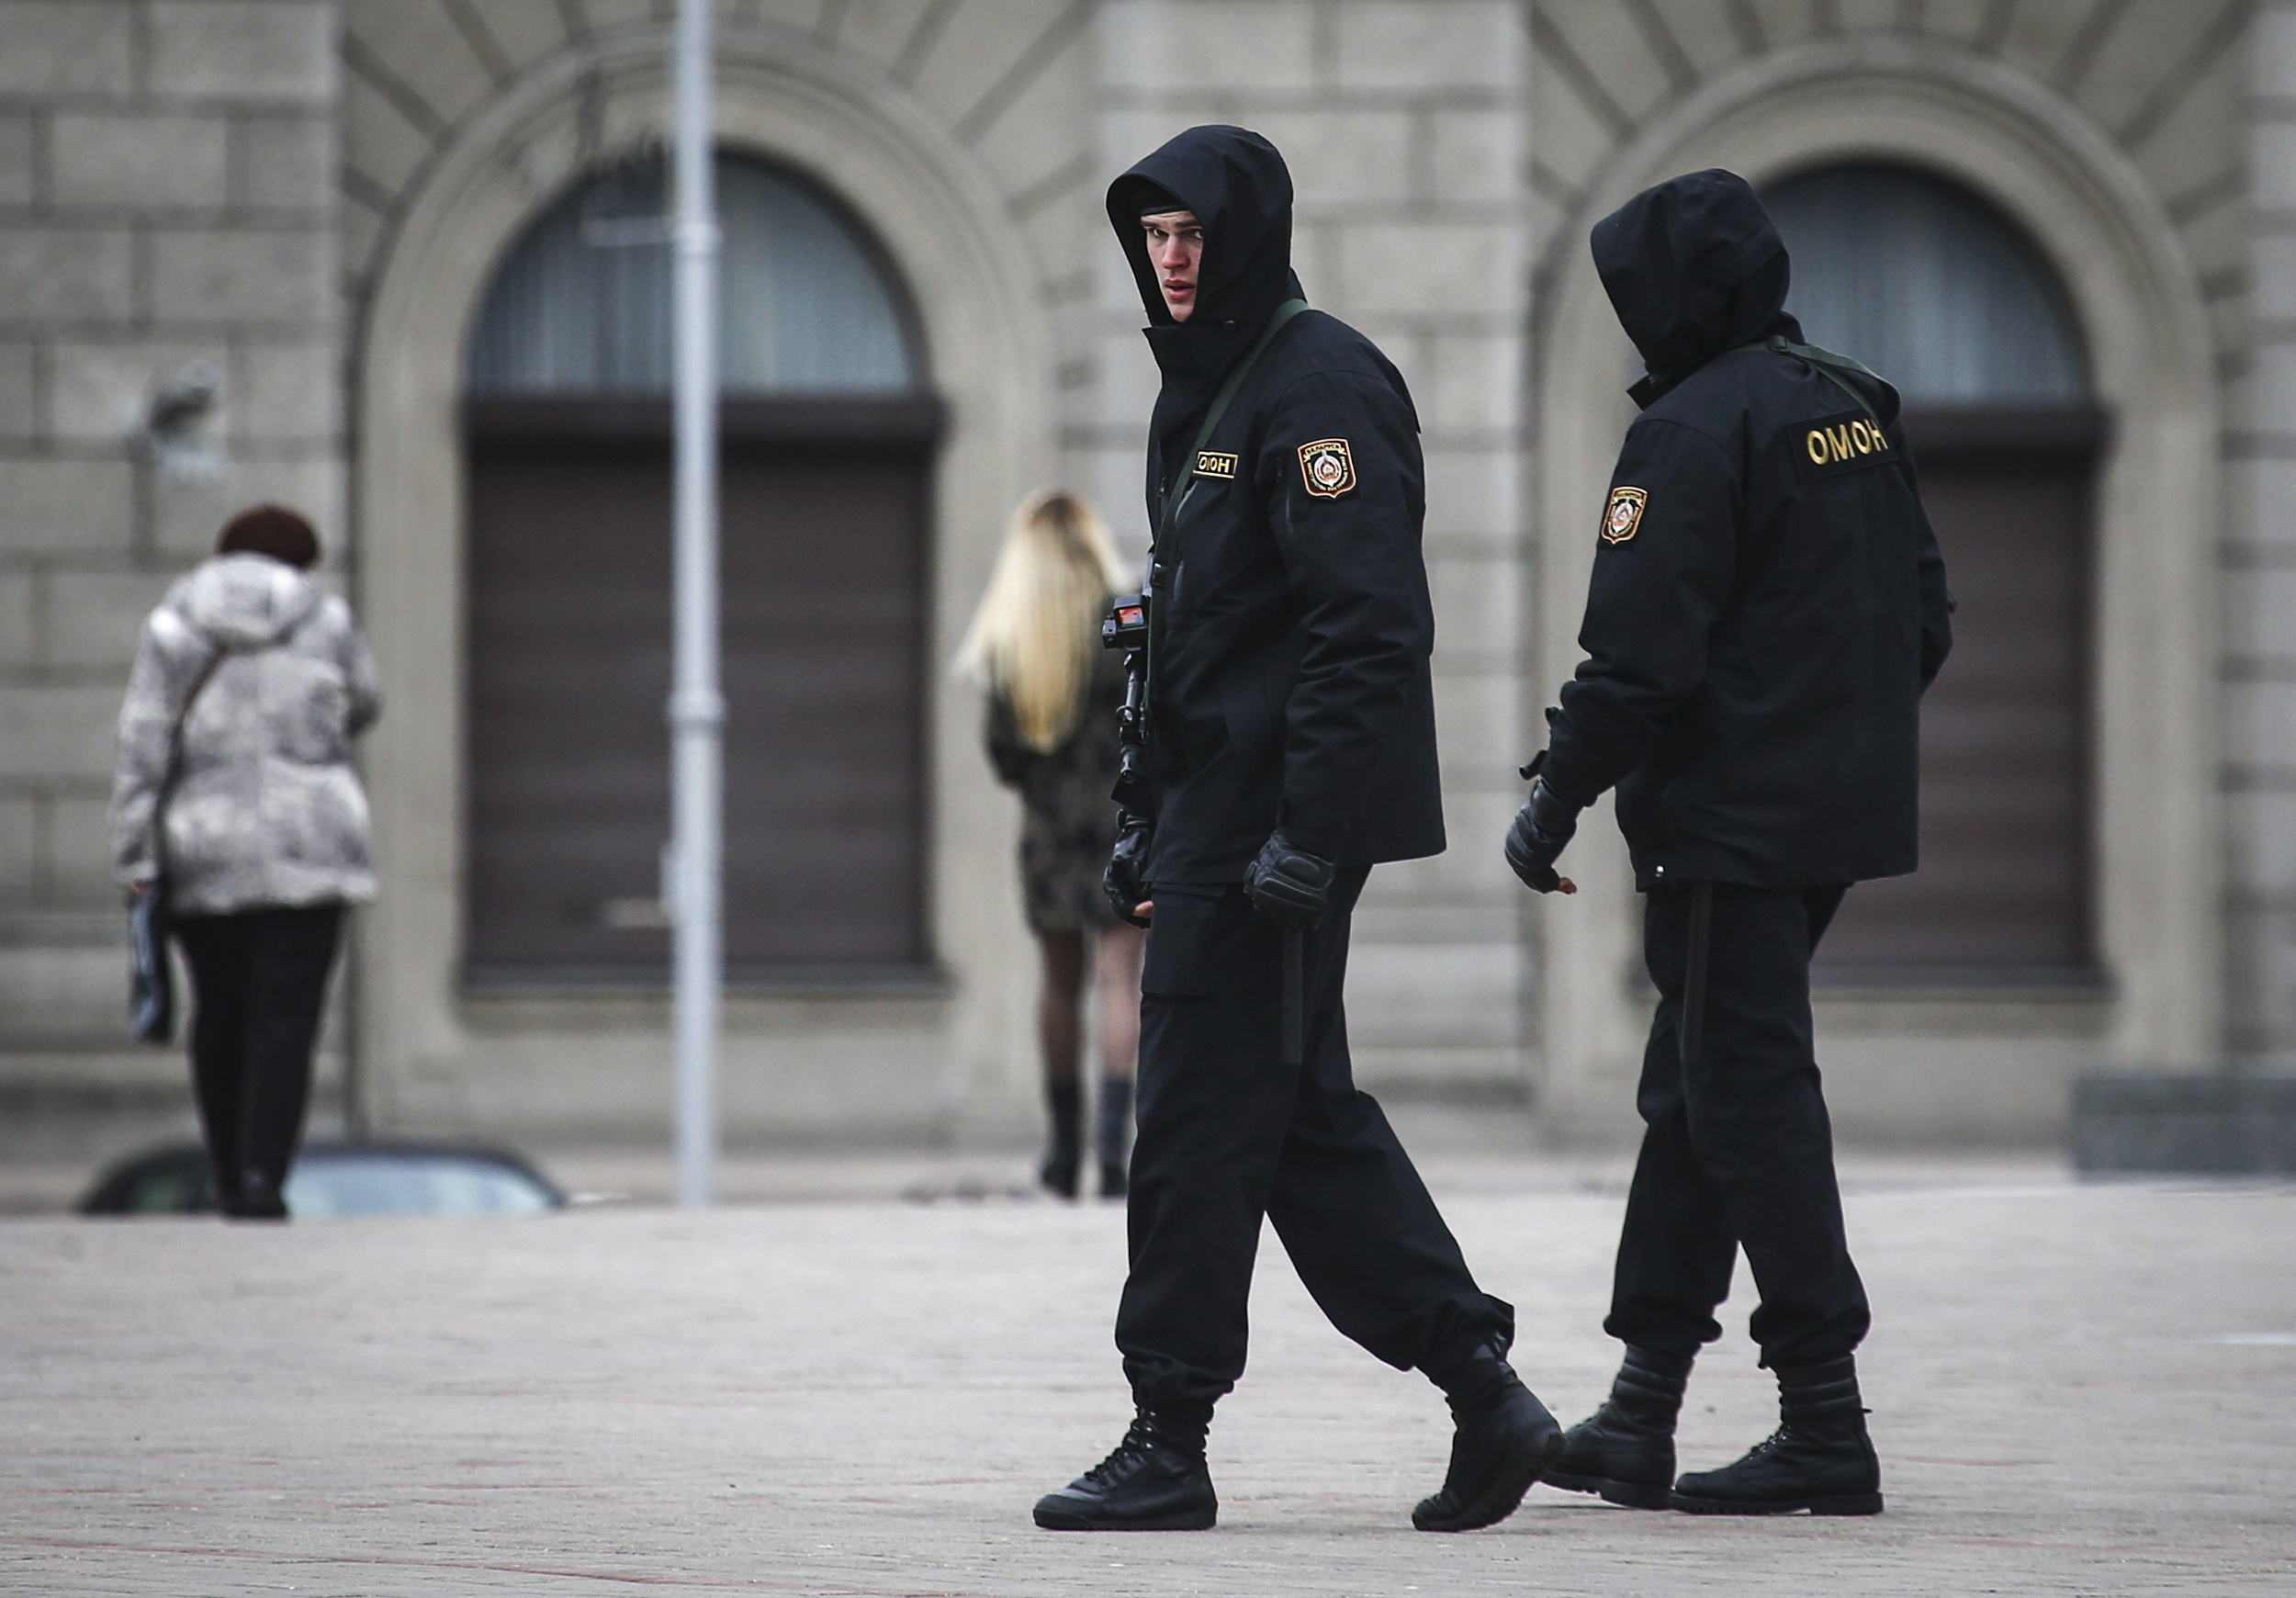 Dozens detained in Belarus after KGB shootout, prominent rights group says